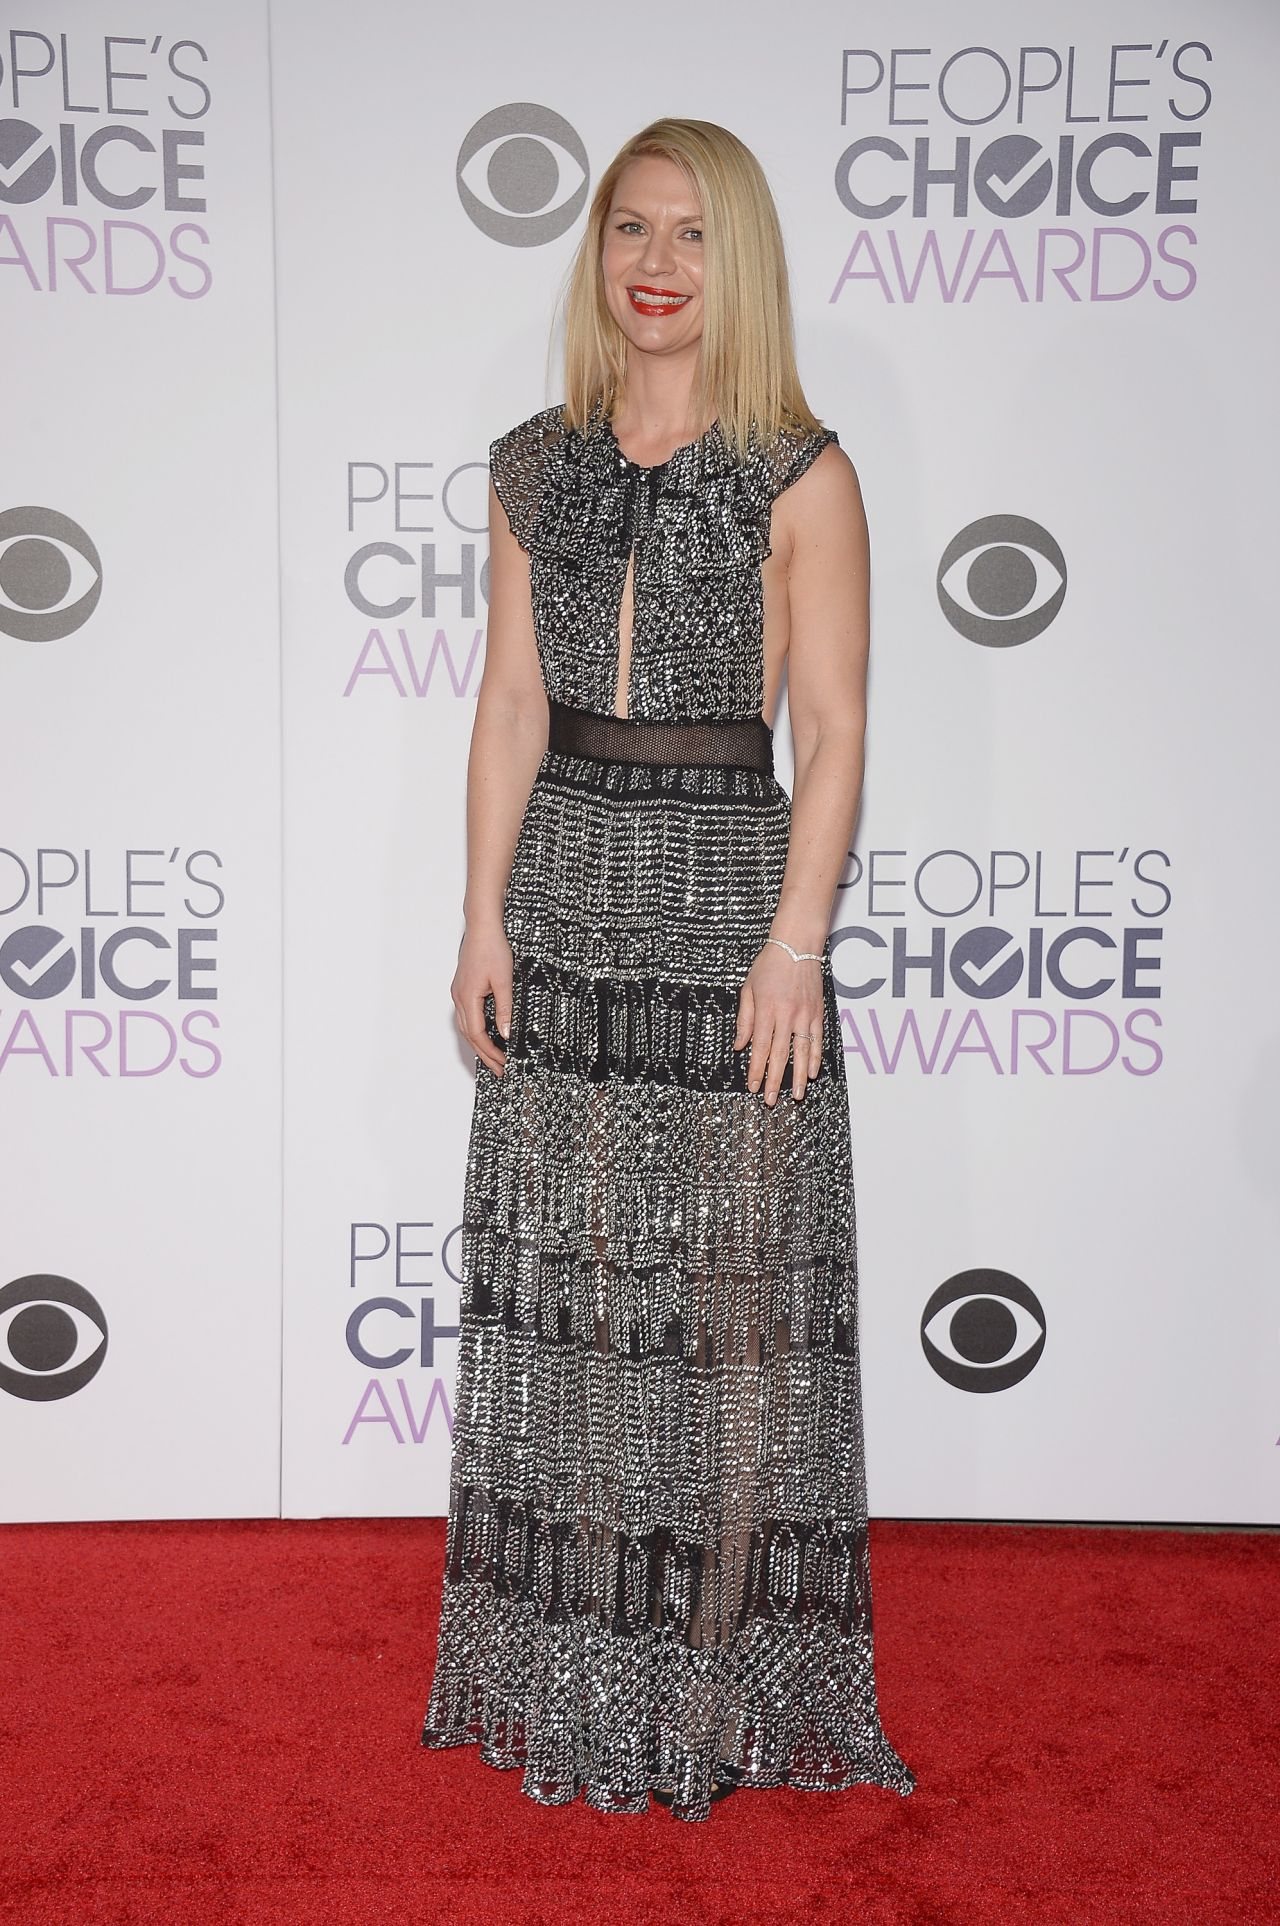 claire-danes-2016-people-s-choice-awards-in-microsoft-theater-in-los-angeles-7